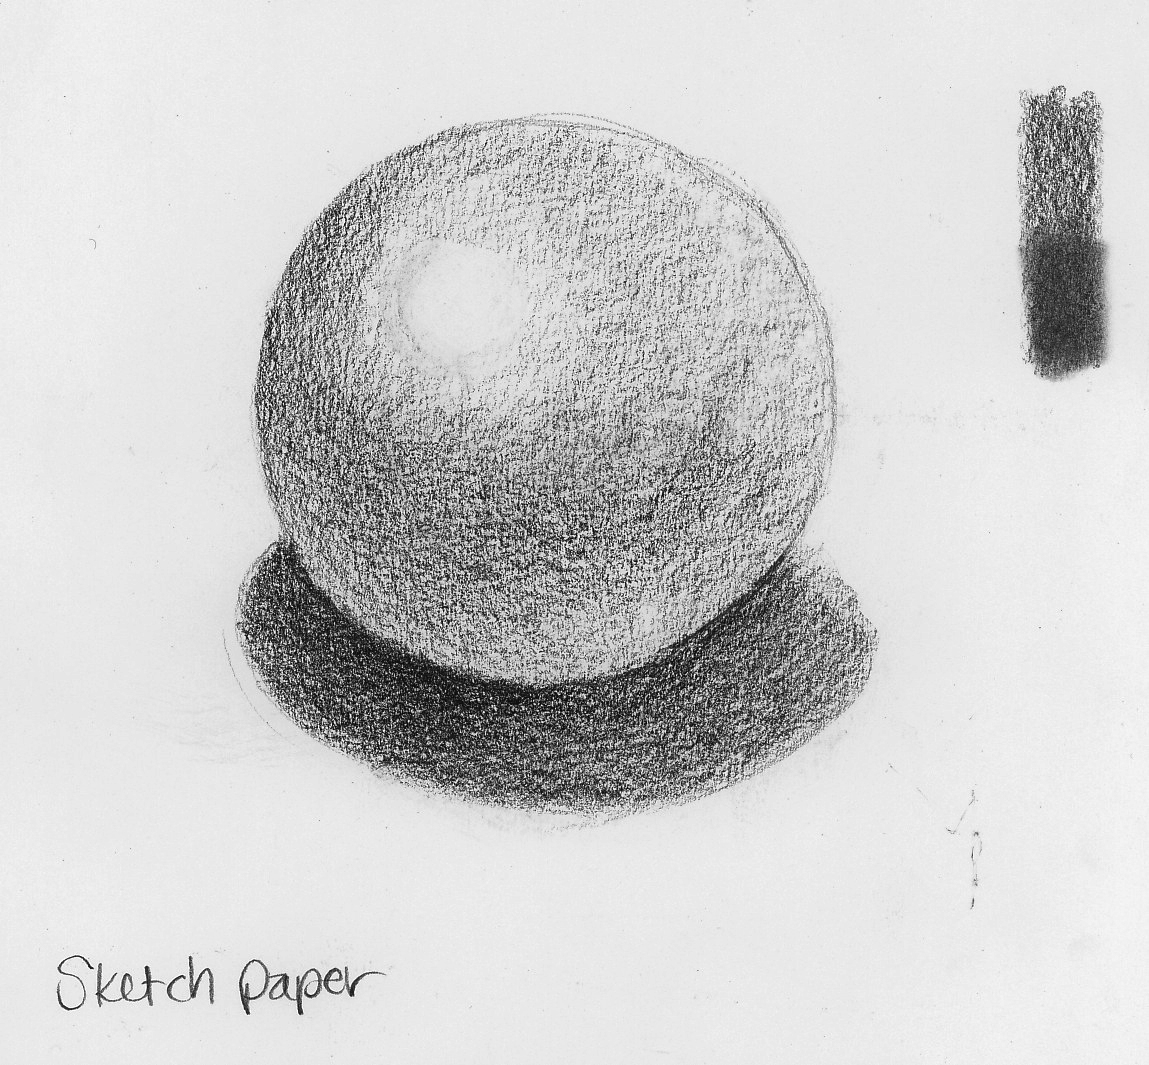 Graphite on Sketch paper. The test strip on the top left show the effect of using a blending stump on this surface (bottom half).